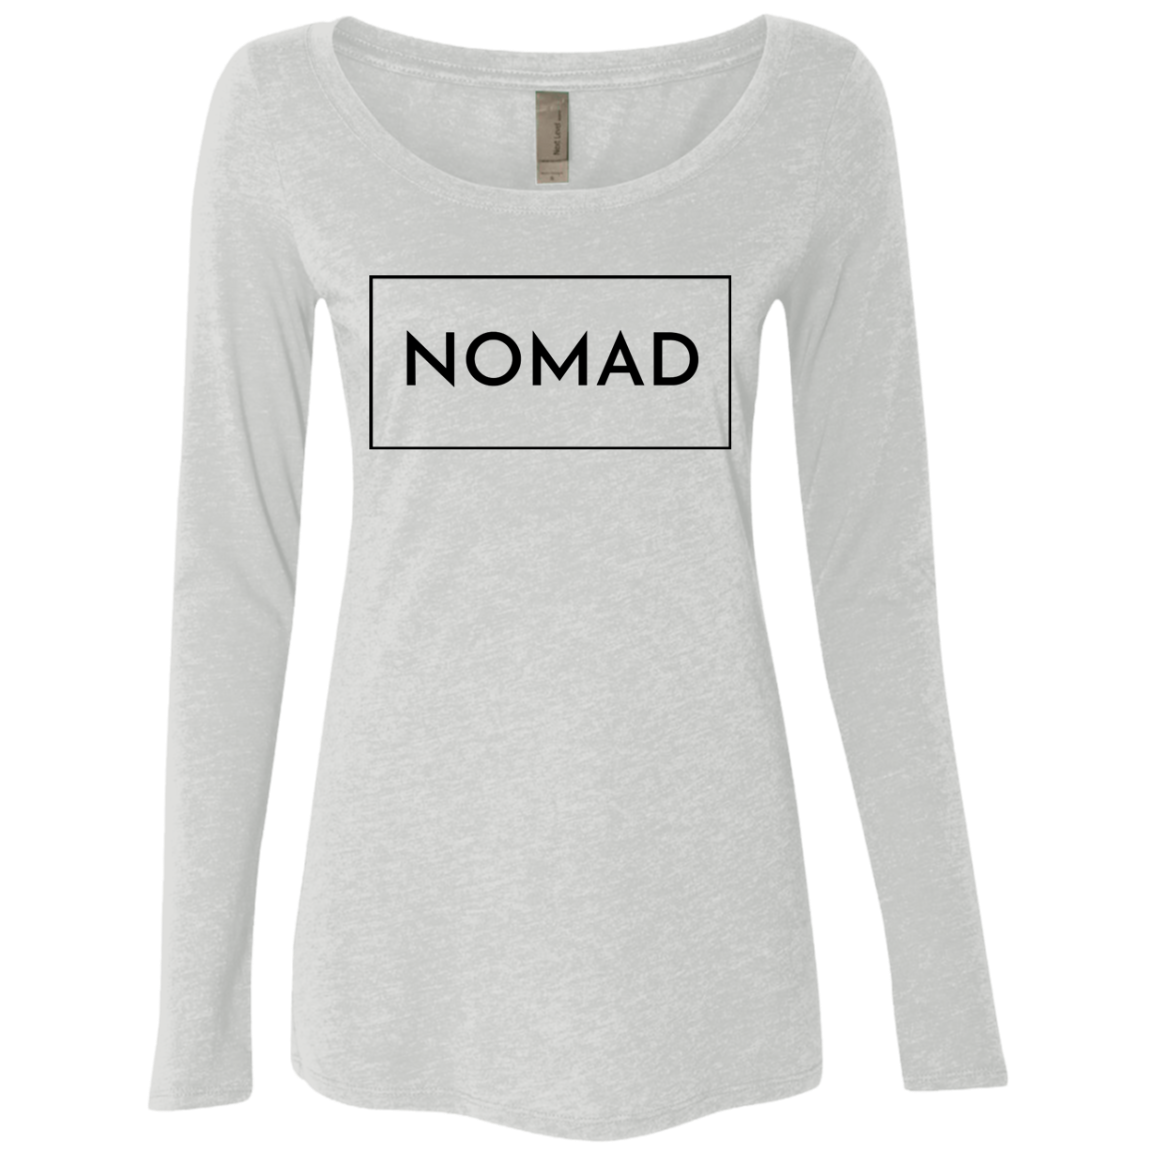 Nomad Life Women's Long Sleeve Tee